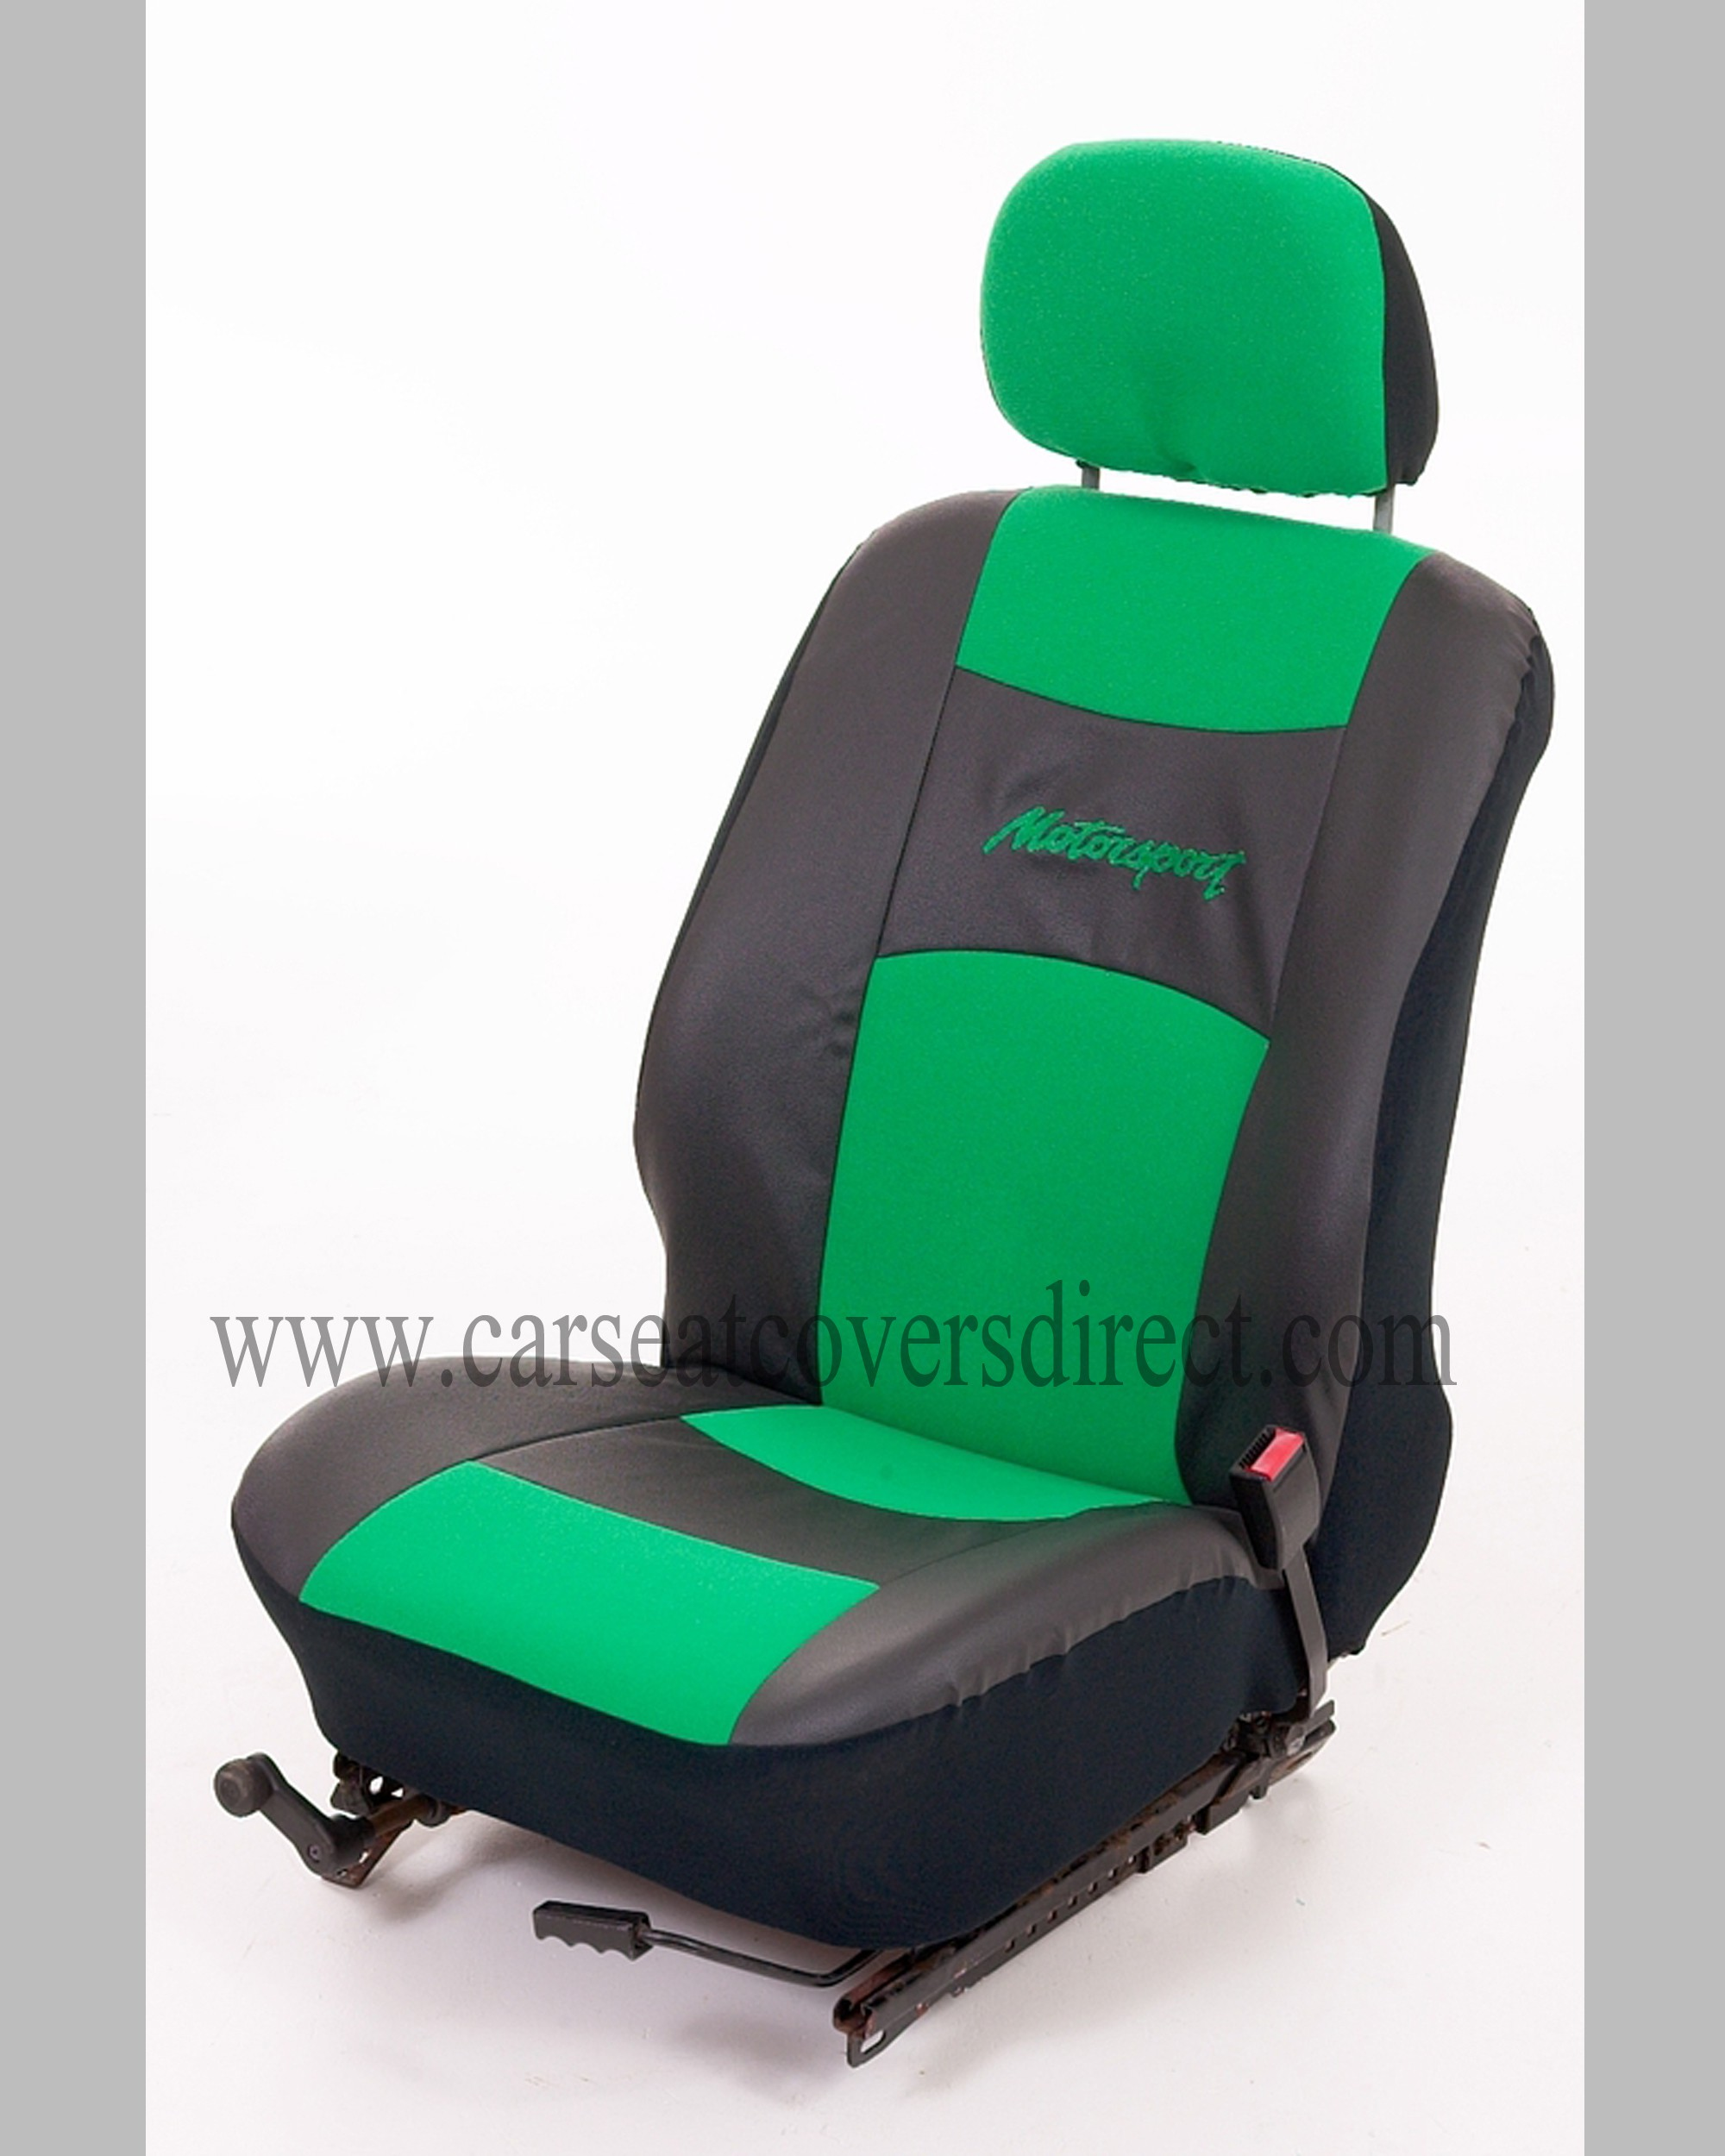 Motorsport UNIVERSAL Seat Covers (green)